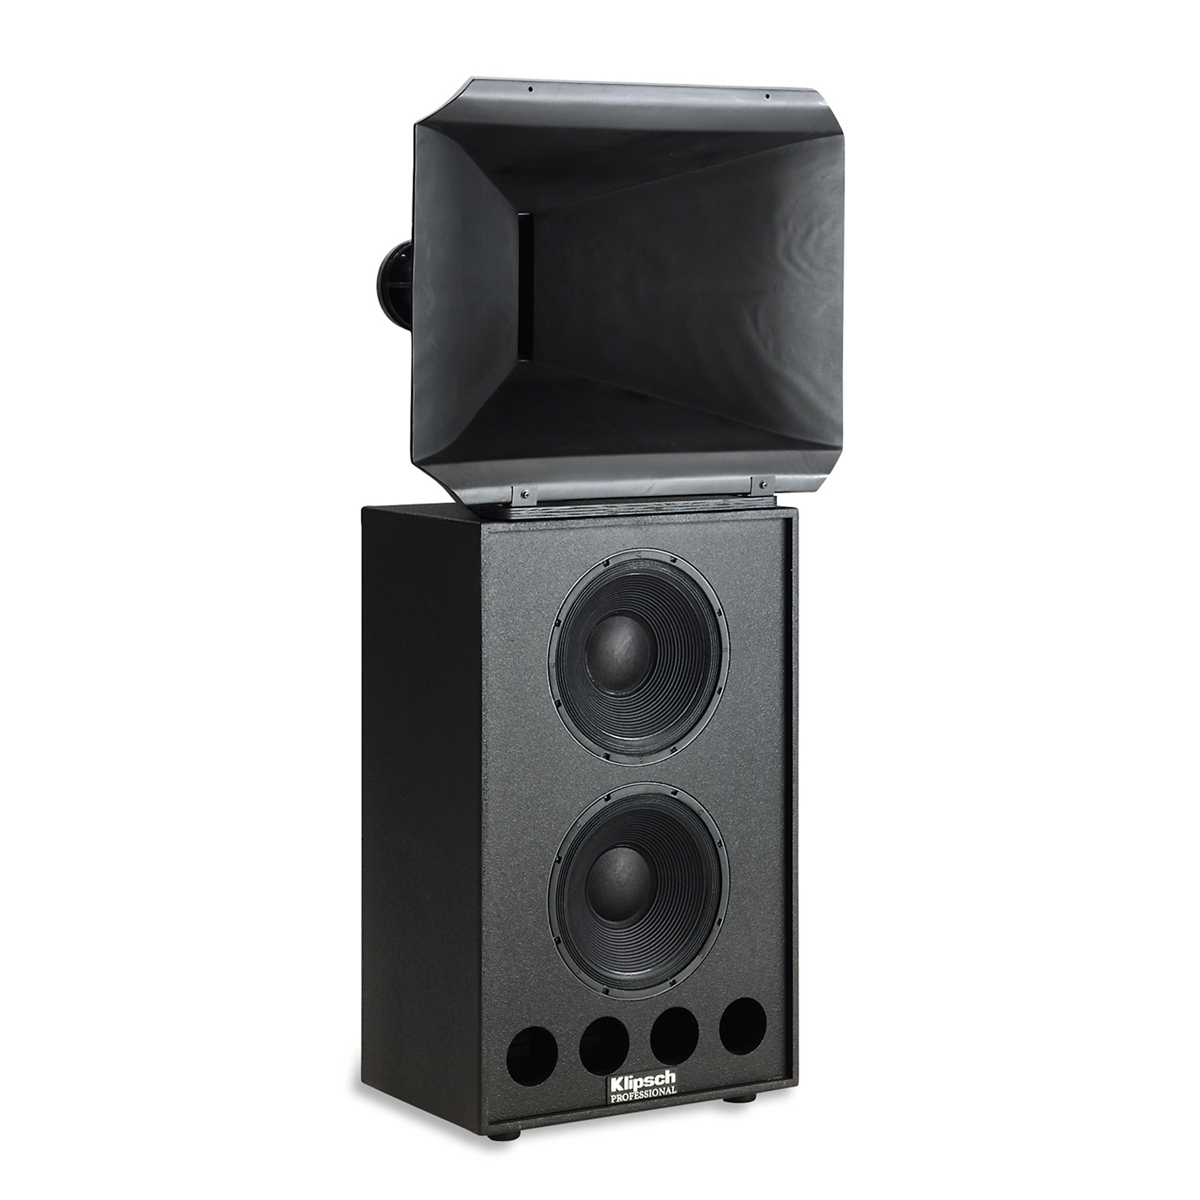 Klipsch Klipsch Kpt 941 T Supplier Cheap E Deals